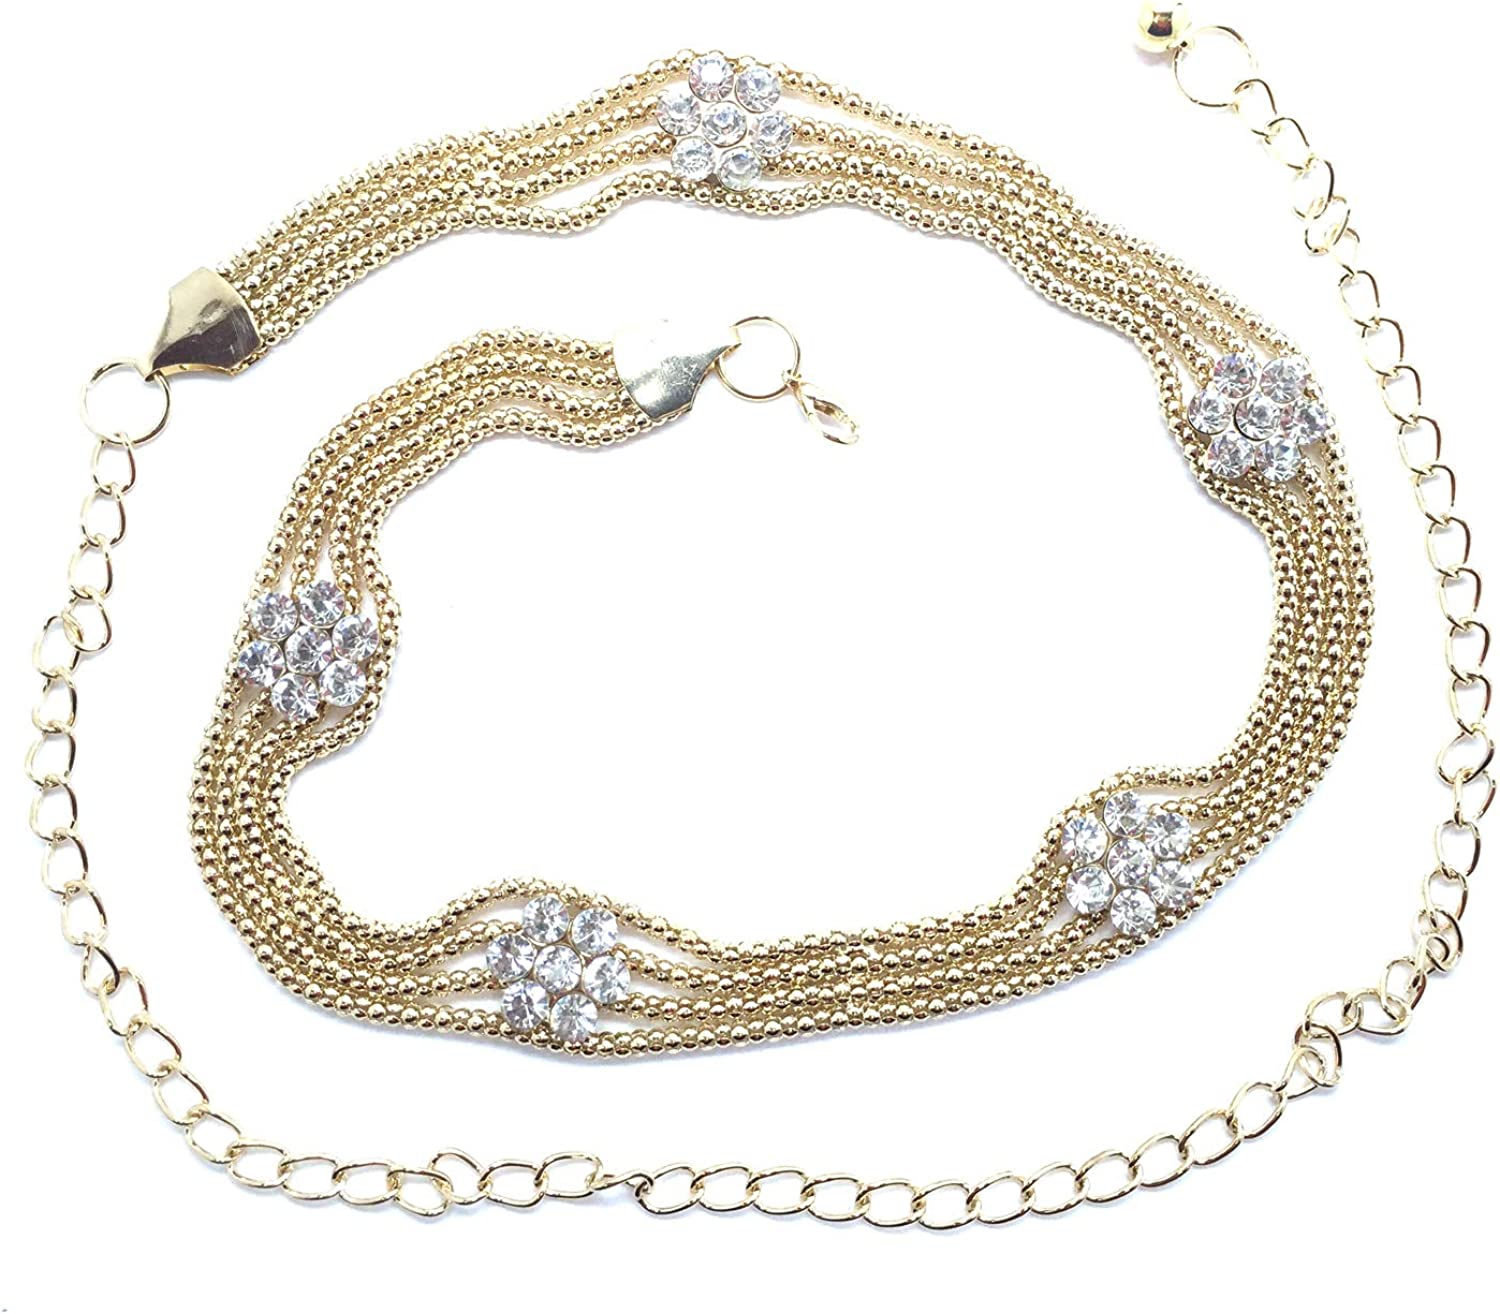 Gold Diamante Waist Chain Belt Rhinestone Adjustable Row for Women Dresses Gown